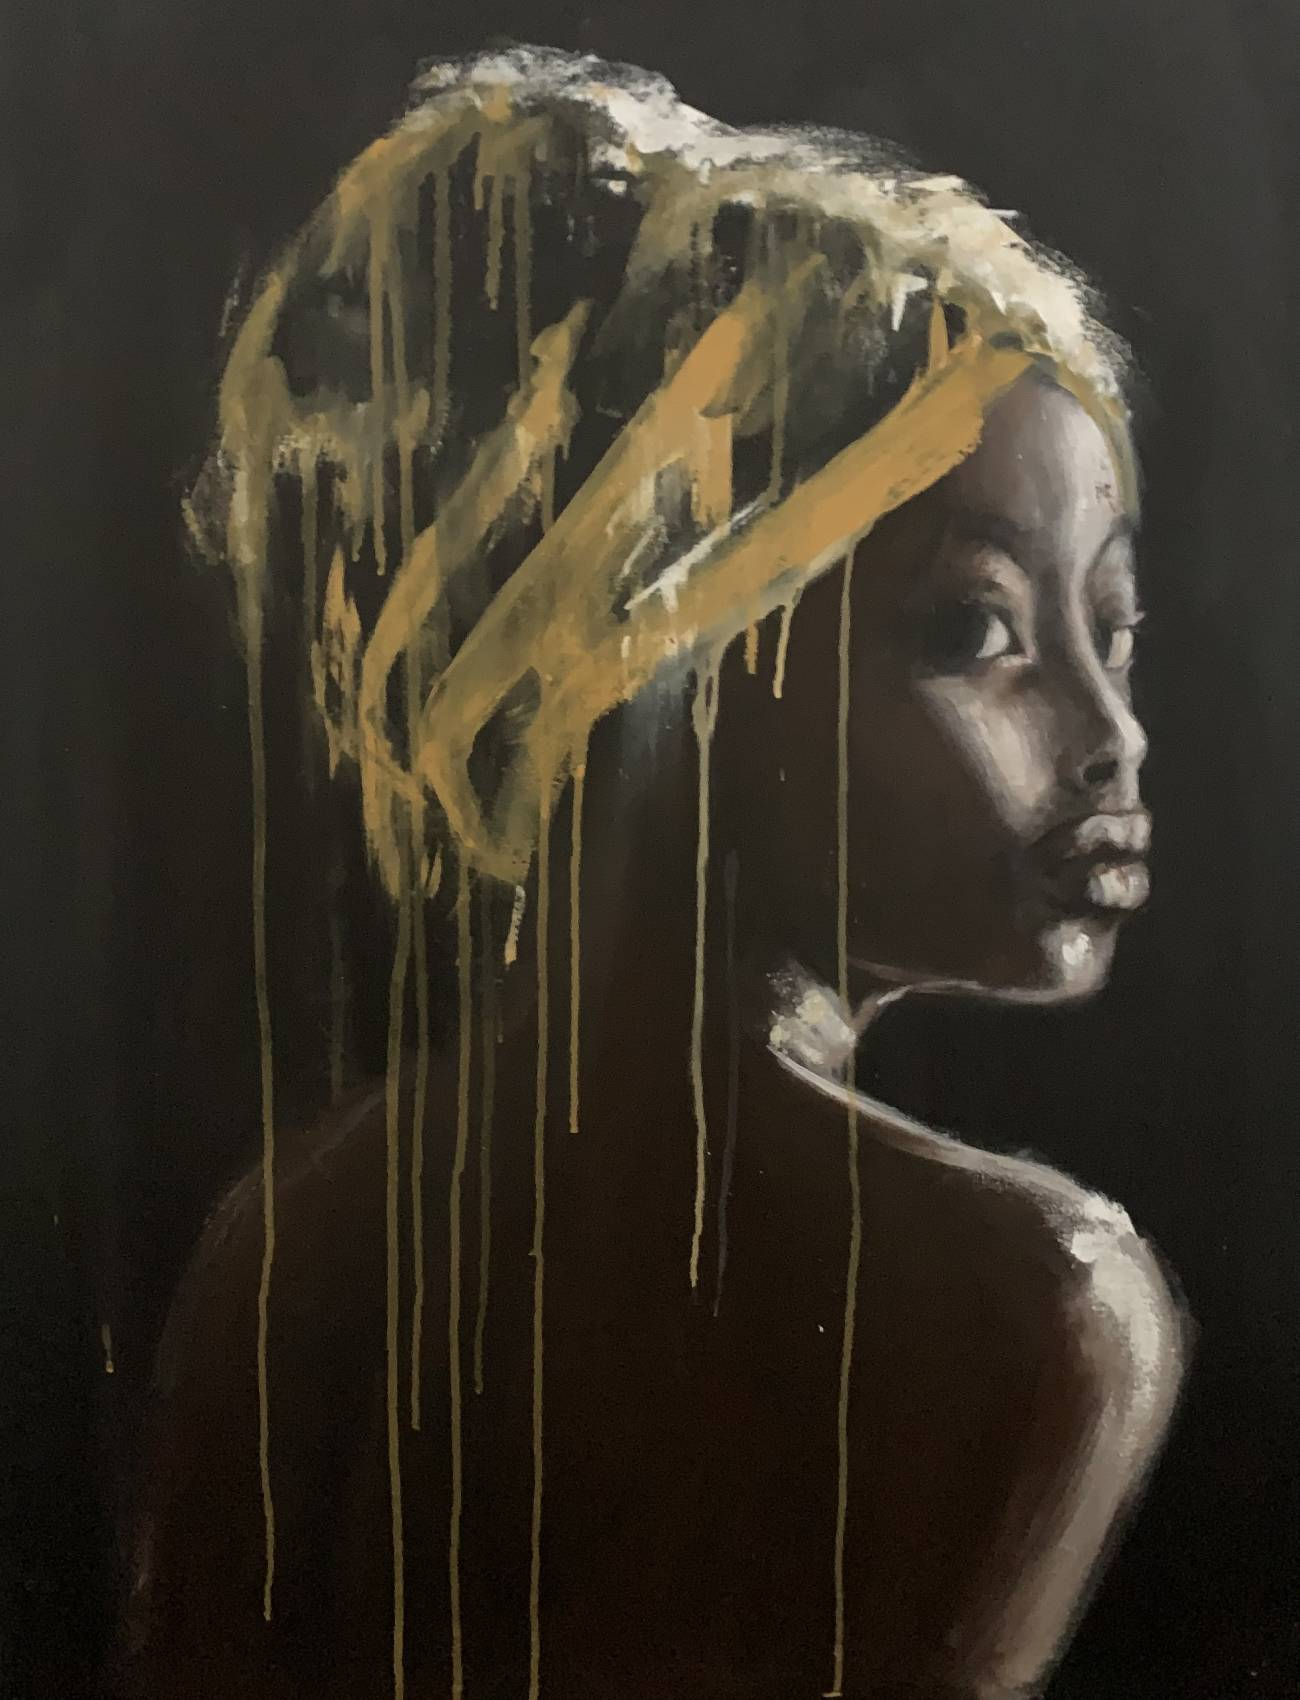 I See You | 30 x 40 inches